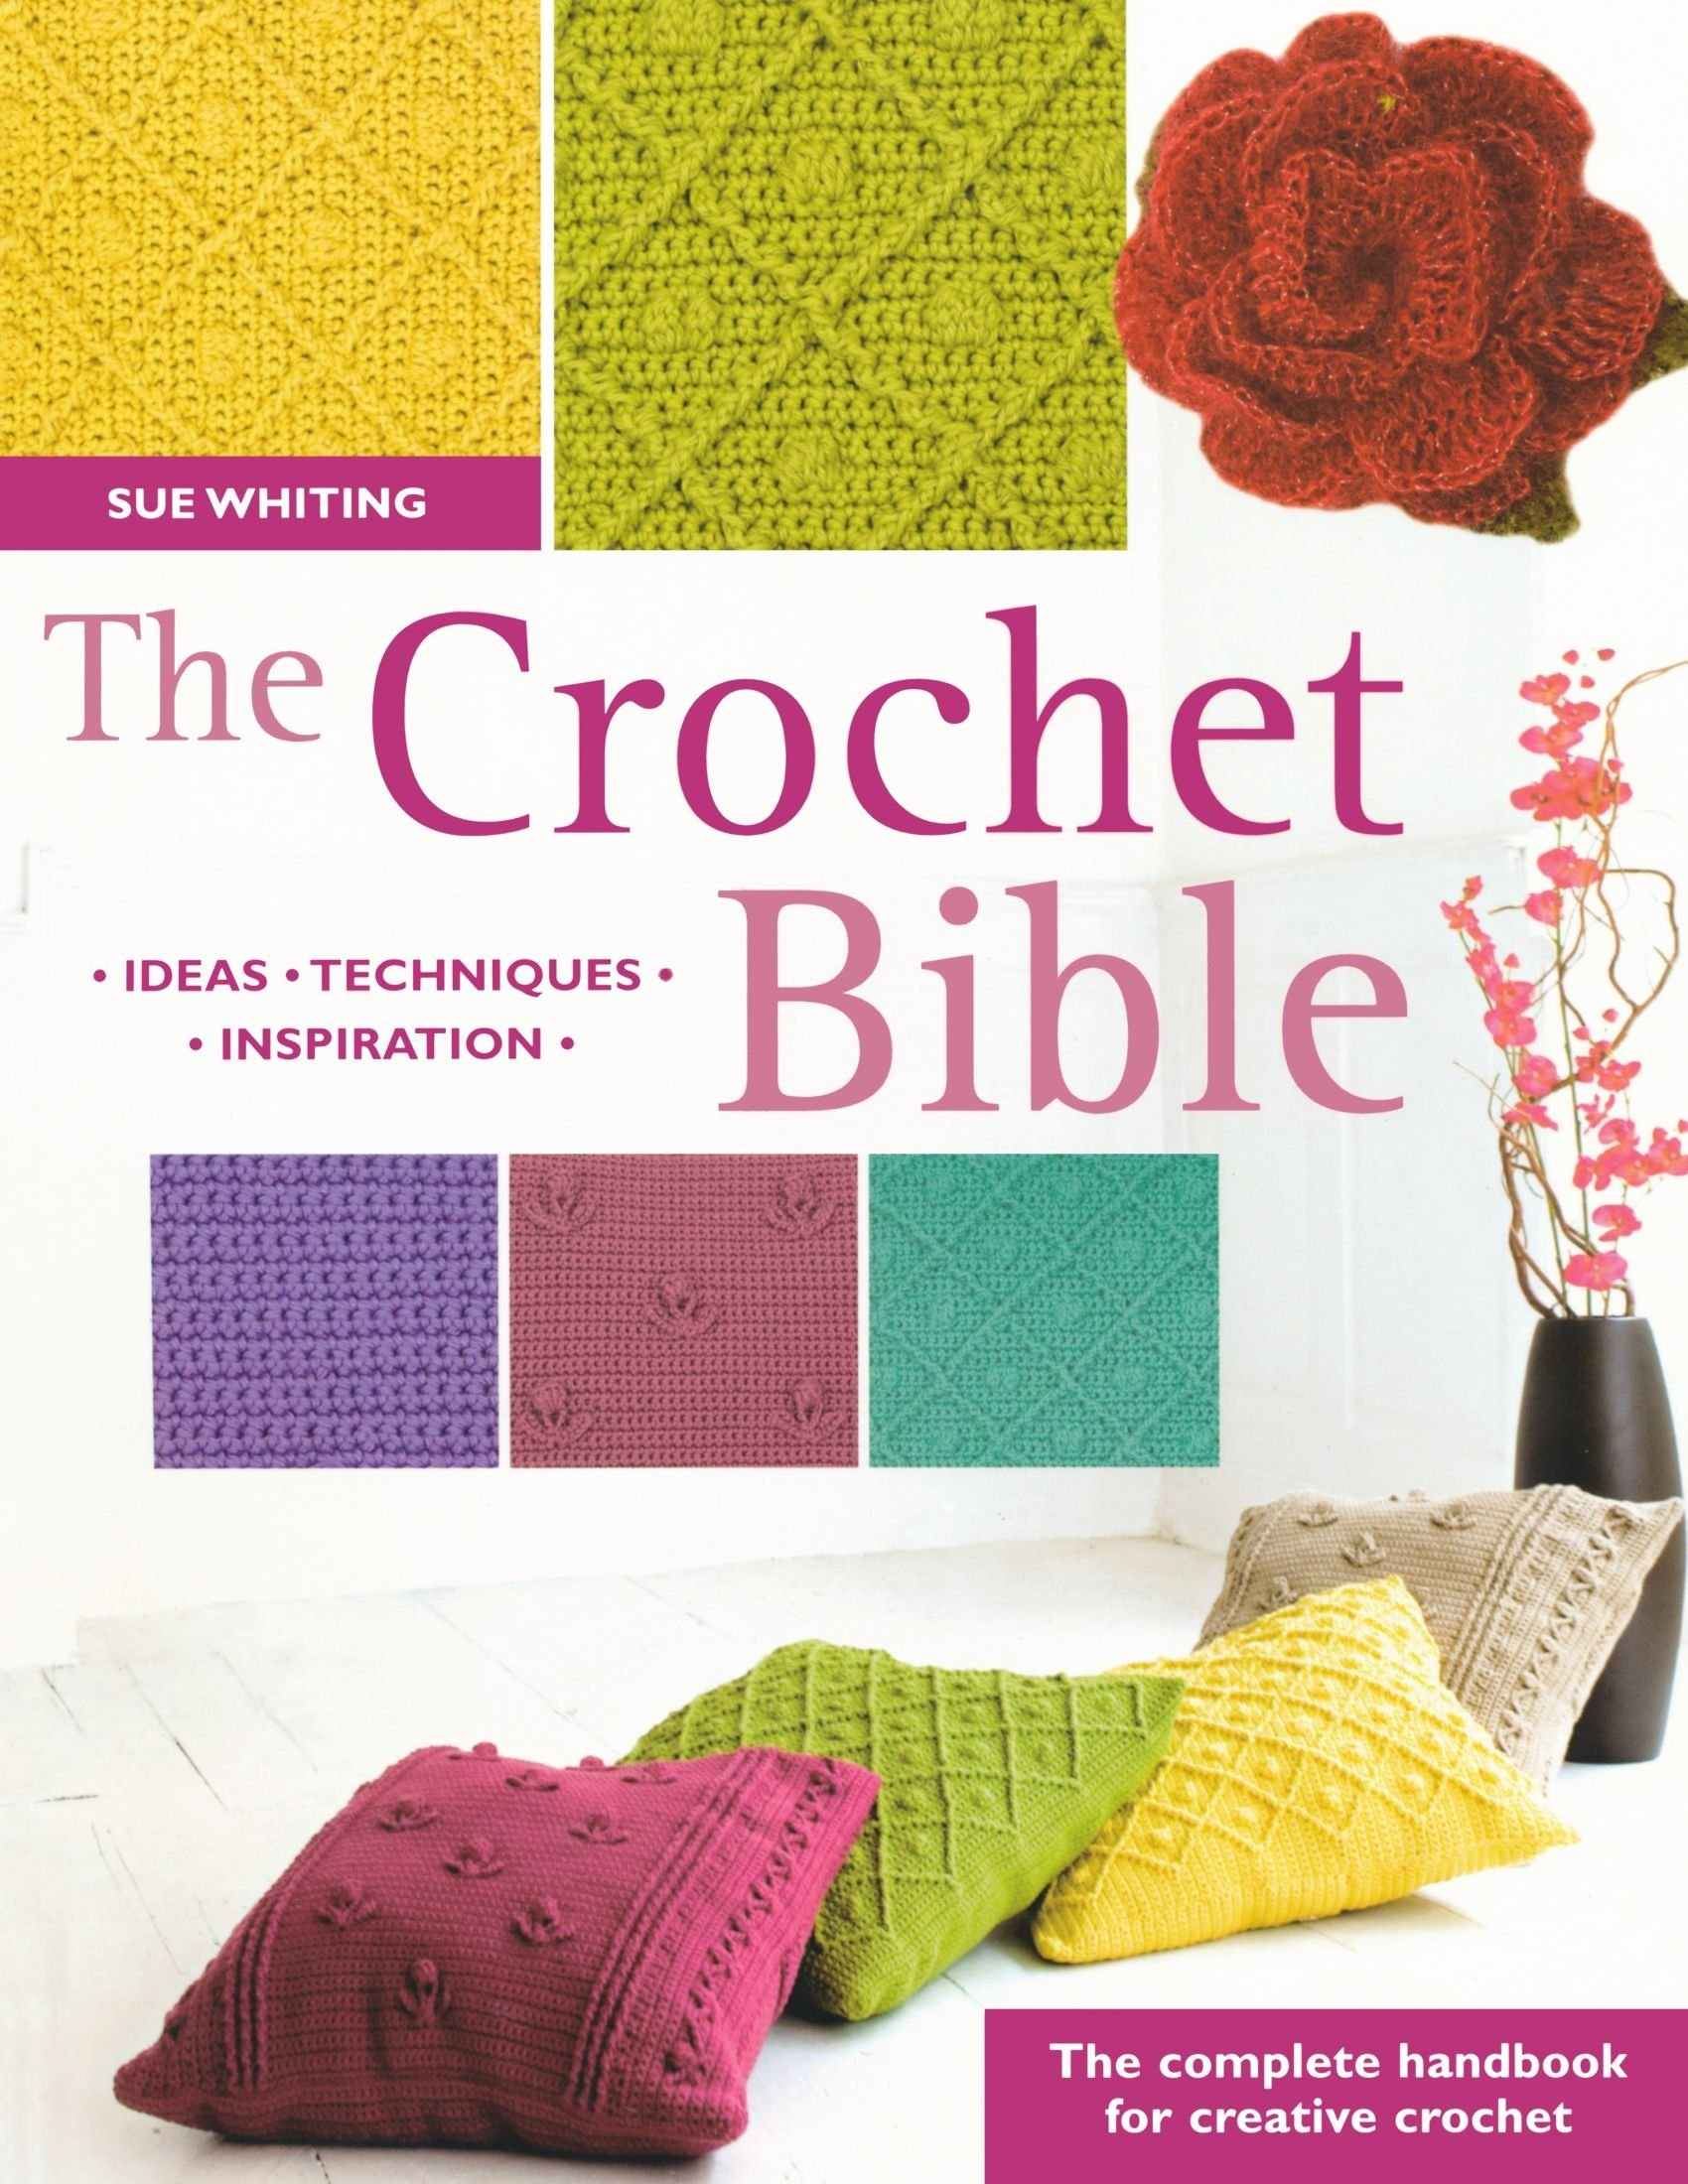 The Crochet Bible: The Complete Handbook for Creative Crochet: The Complete  Handbook for Creative Crocheting by Sue Whiting (30-Nov-2007) Paperback: ...